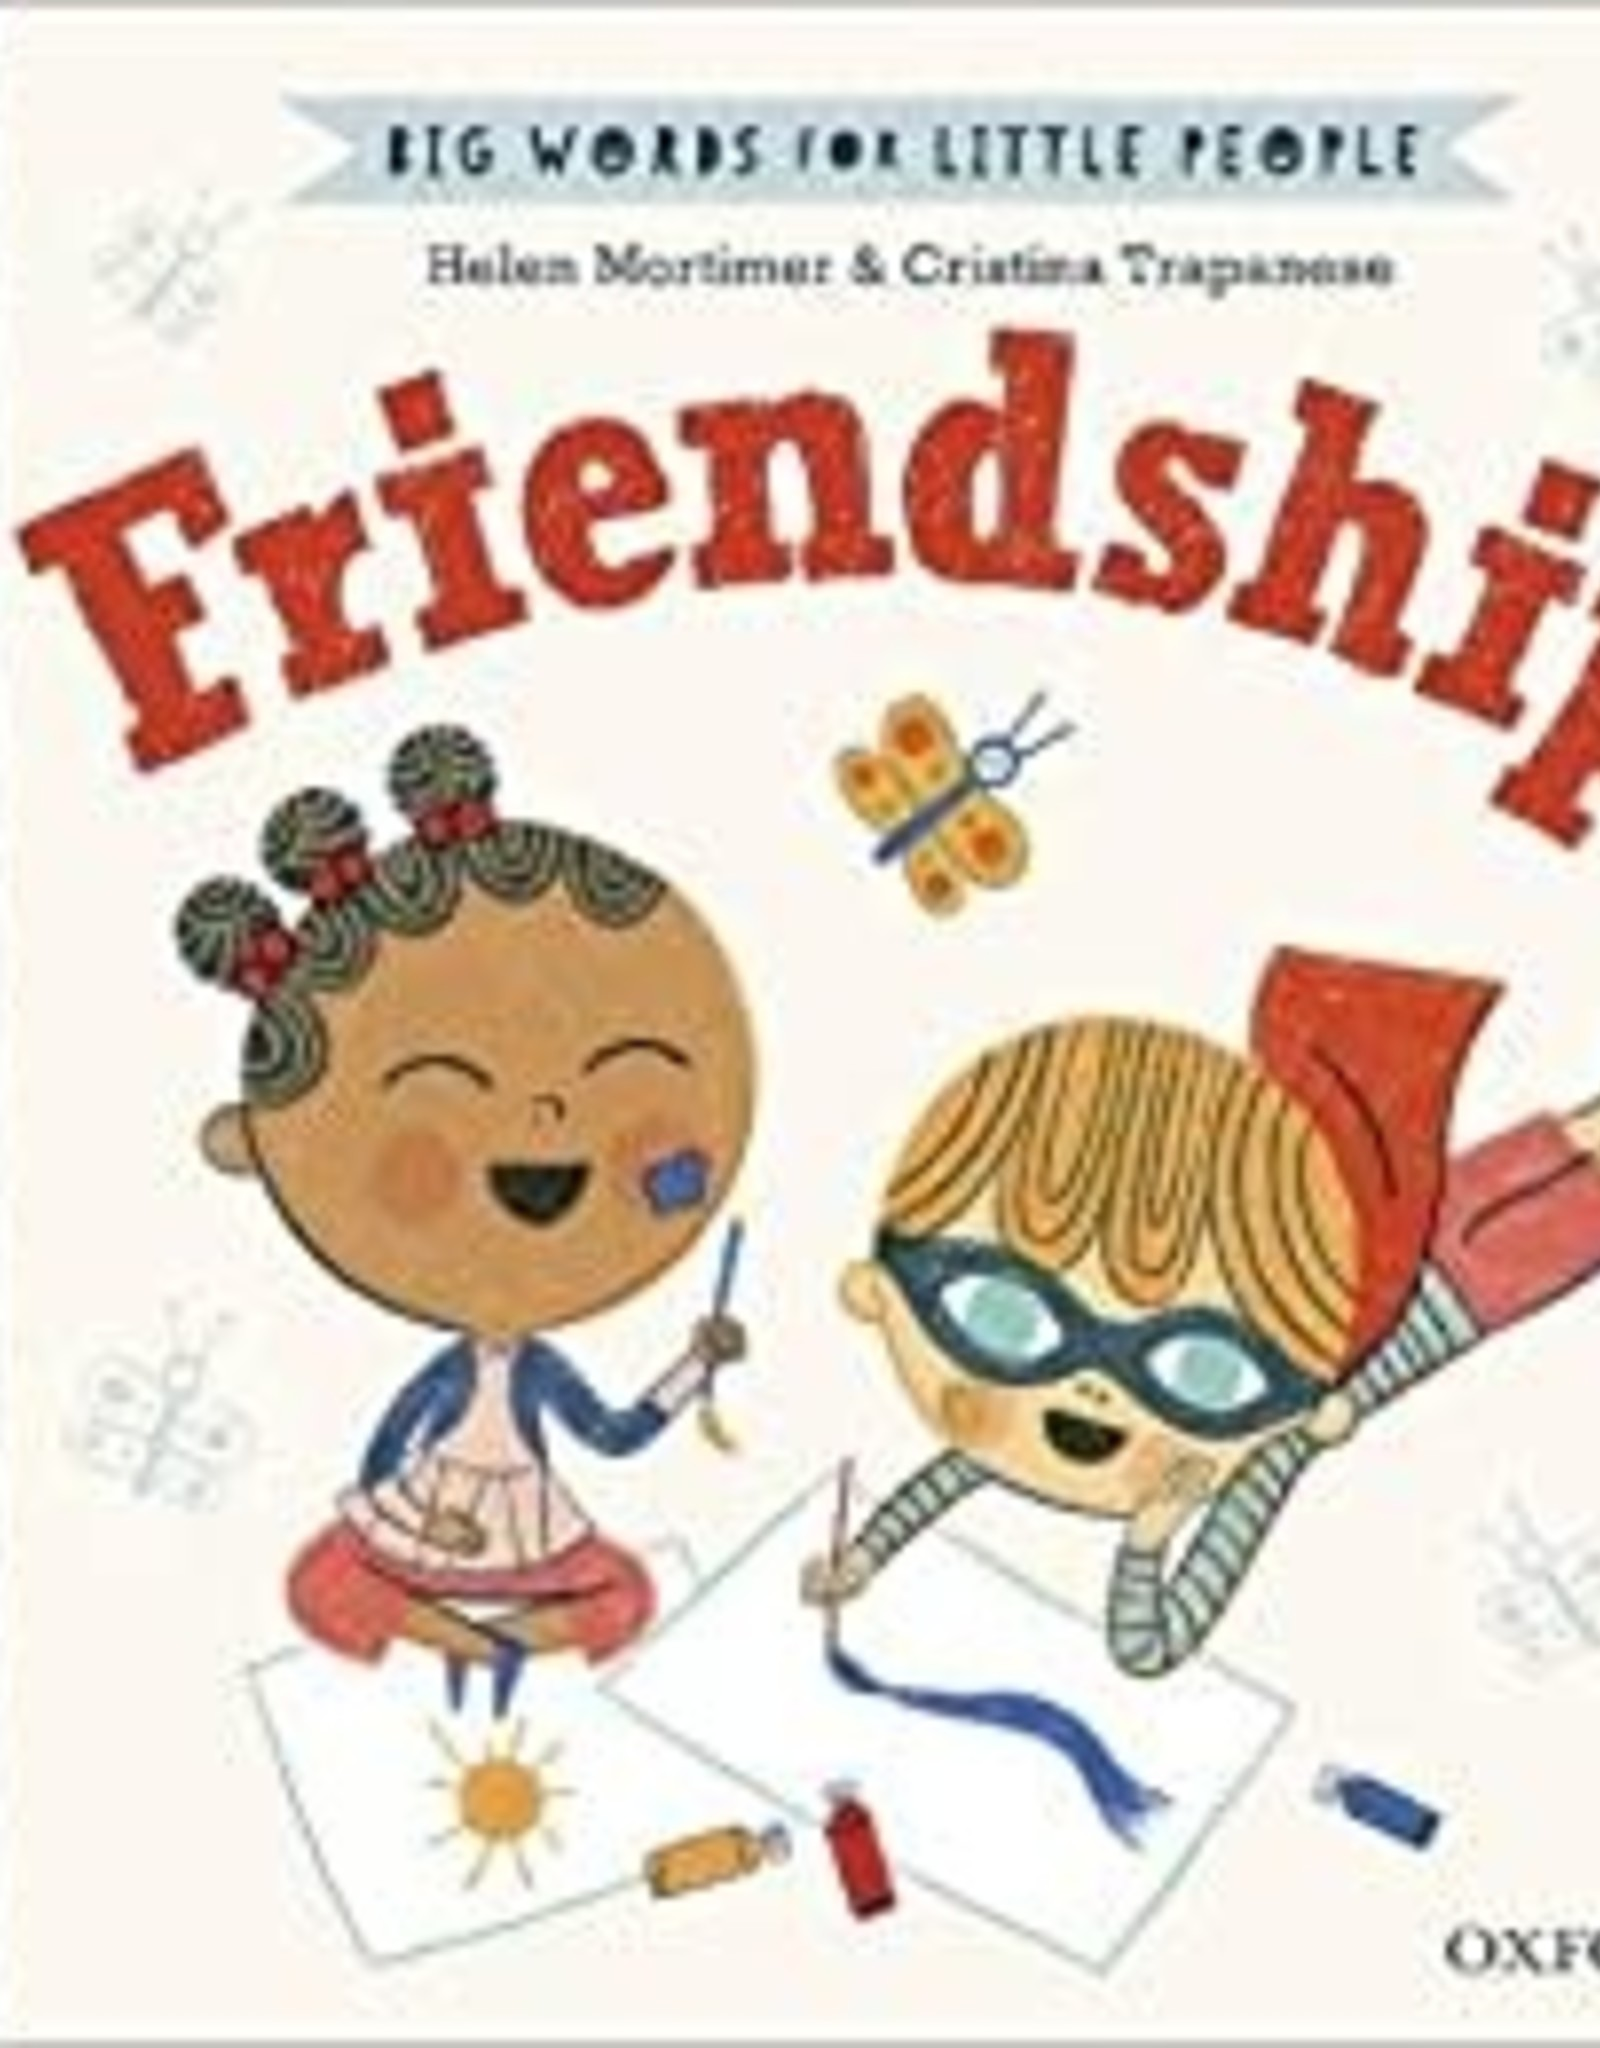 Big Words for Little People: Friendship